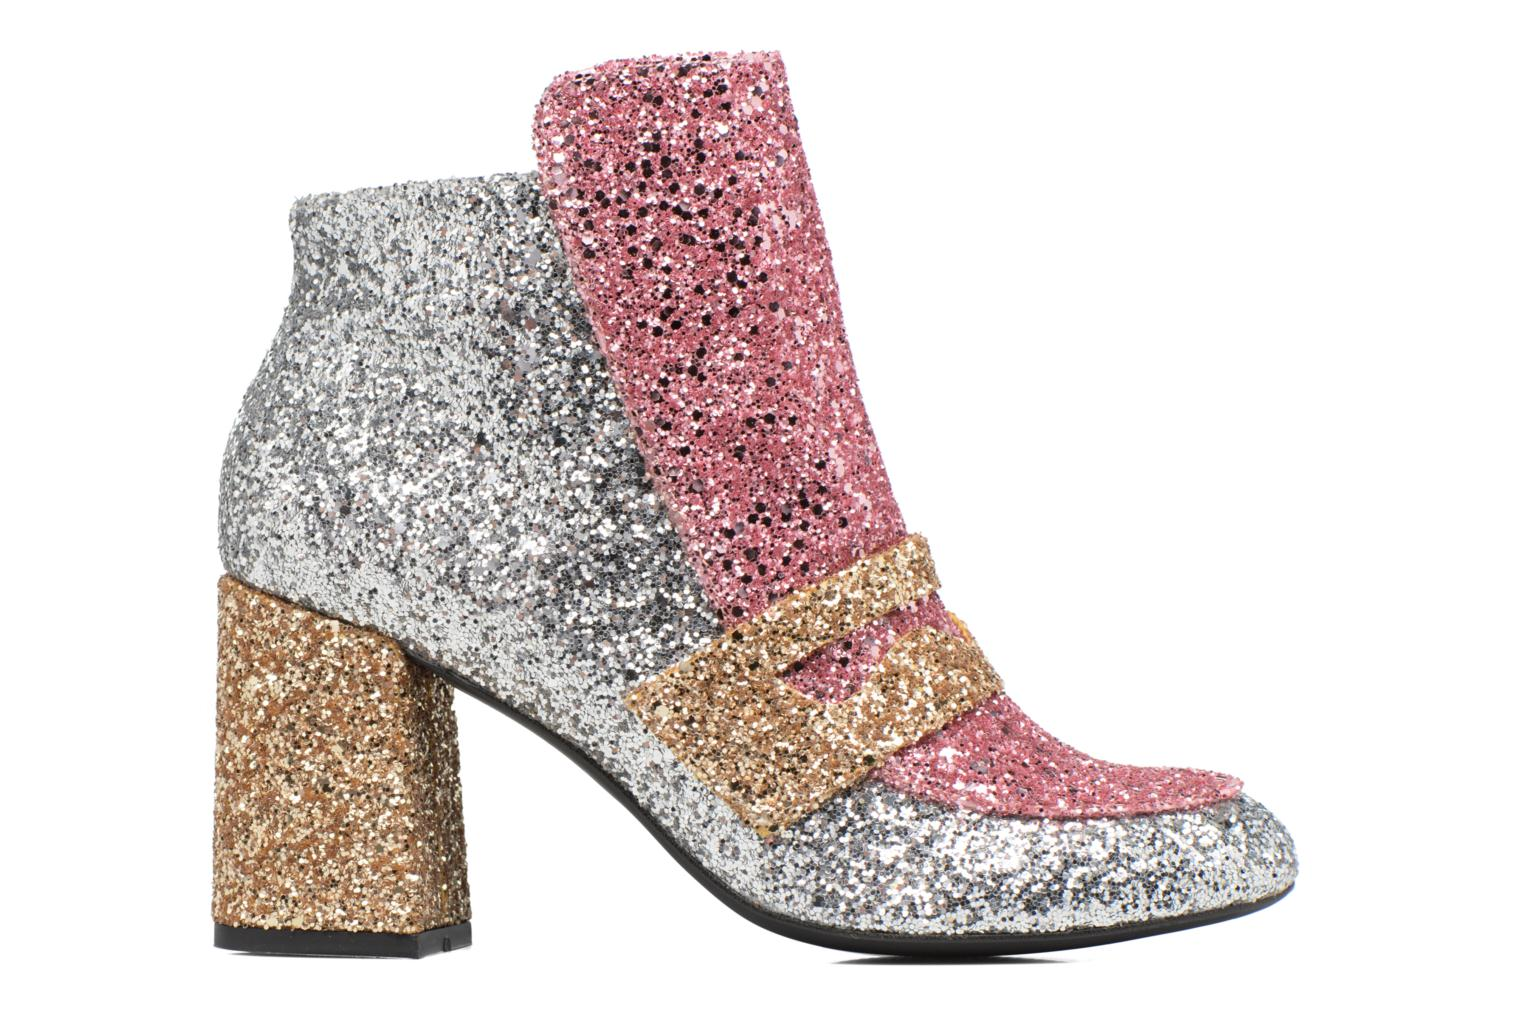 Marques Chaussure femme Made by SARENZA femme Winter Freak #2 Glitter Multicolore